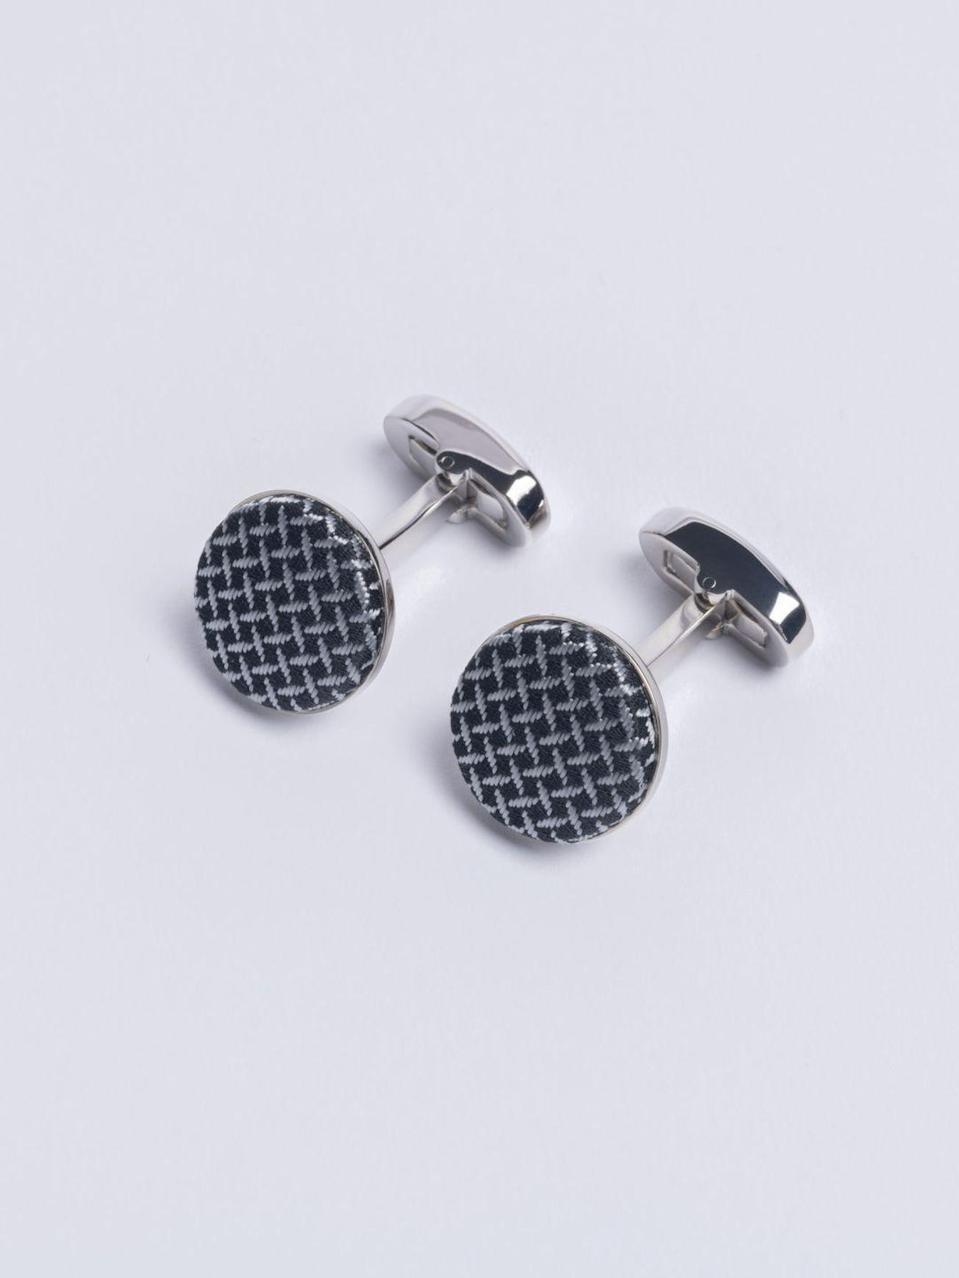 """<p>You can't really go wrong with a suave tie and a pair of cufflinks, especially now the offices are opening back up again. For something a little more special, Henry Poole of Savile Row stocks some of the best out there. Our pick of the bunch are the Silver Cundey cufflinks. Chic and snazzy, the signature weave engraved with the house's namesake can also be matched with a weave tie.. </p><p>From £75, <a href=""""https://henrypoole.com/shop/"""" rel=""""nofollow noopener"""" target=""""_blank"""" data-ylk=""""slk:Henry Poole"""" class=""""link rapid-noclick-resp"""">Henry Poole</a>.</p>"""